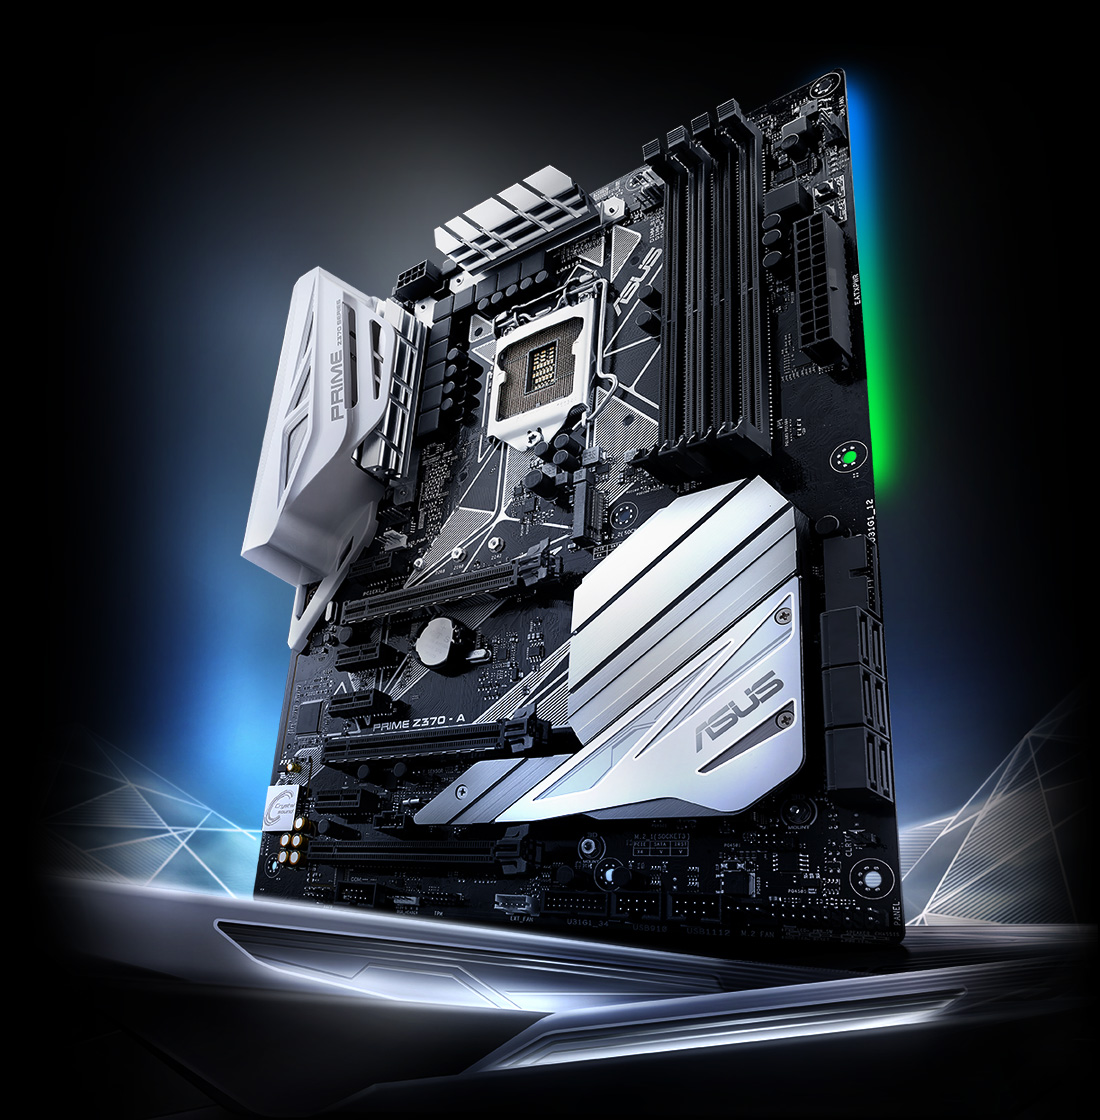 https://www.asus.com/us/Motherboards/PRIME-Z370-A/websites/global/products/PW1qjn3qcD5tNKcT/img/5way-pic.jpg